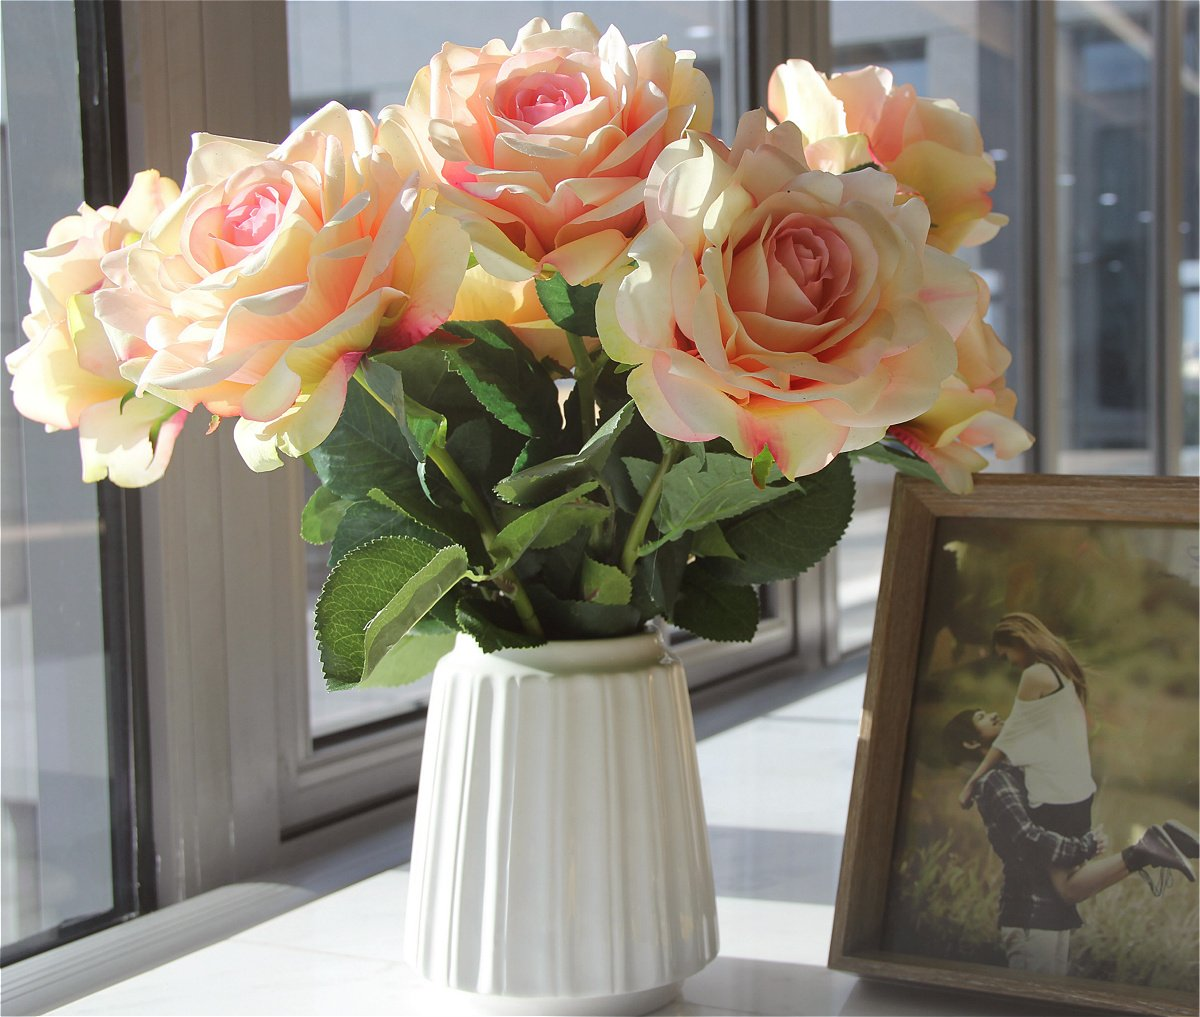 FAR SELECTIONS fangzhenhua1 Artificial Silk Flowers Fake Rose for Home Garden Party Wedding Decoration(Champagne)